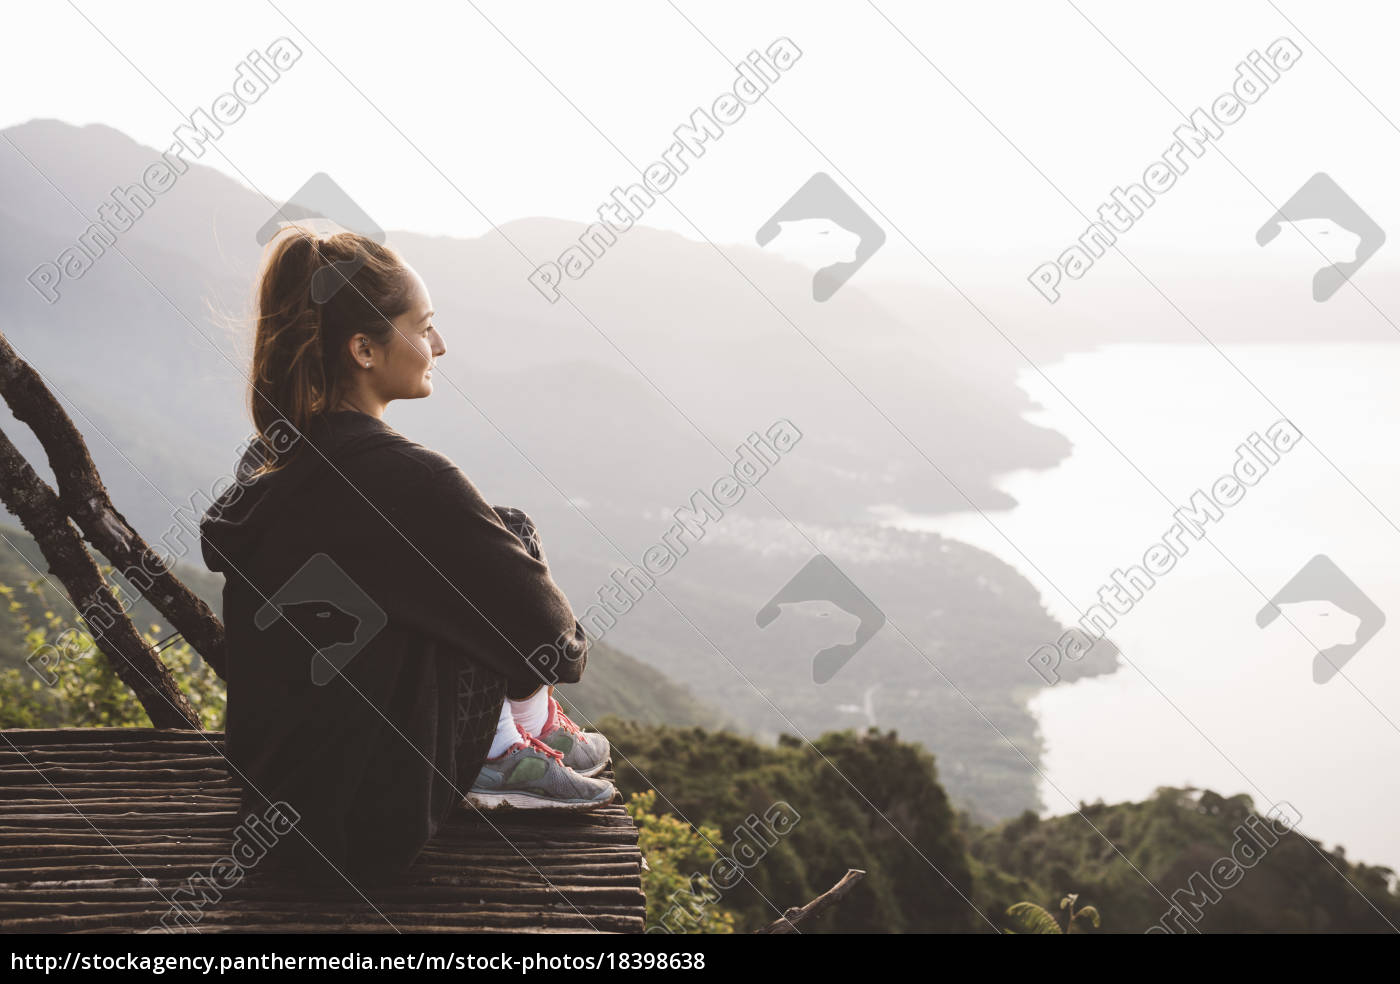 young, woman, on, balcony, looking, out - 18398638